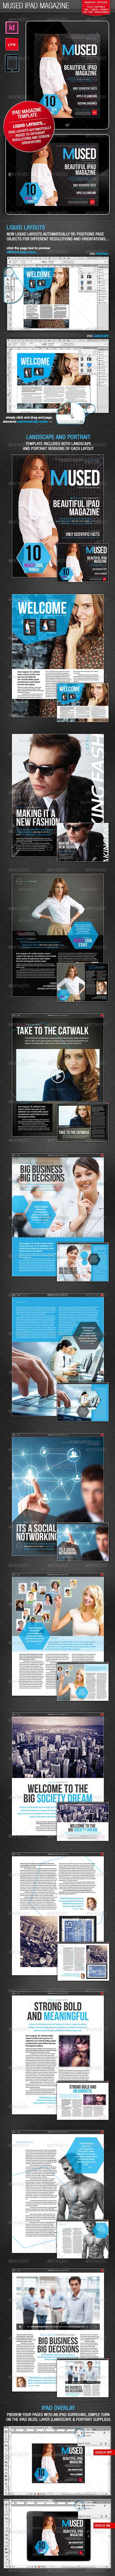 GraphicRiver Mused iPad Magazine 2701137